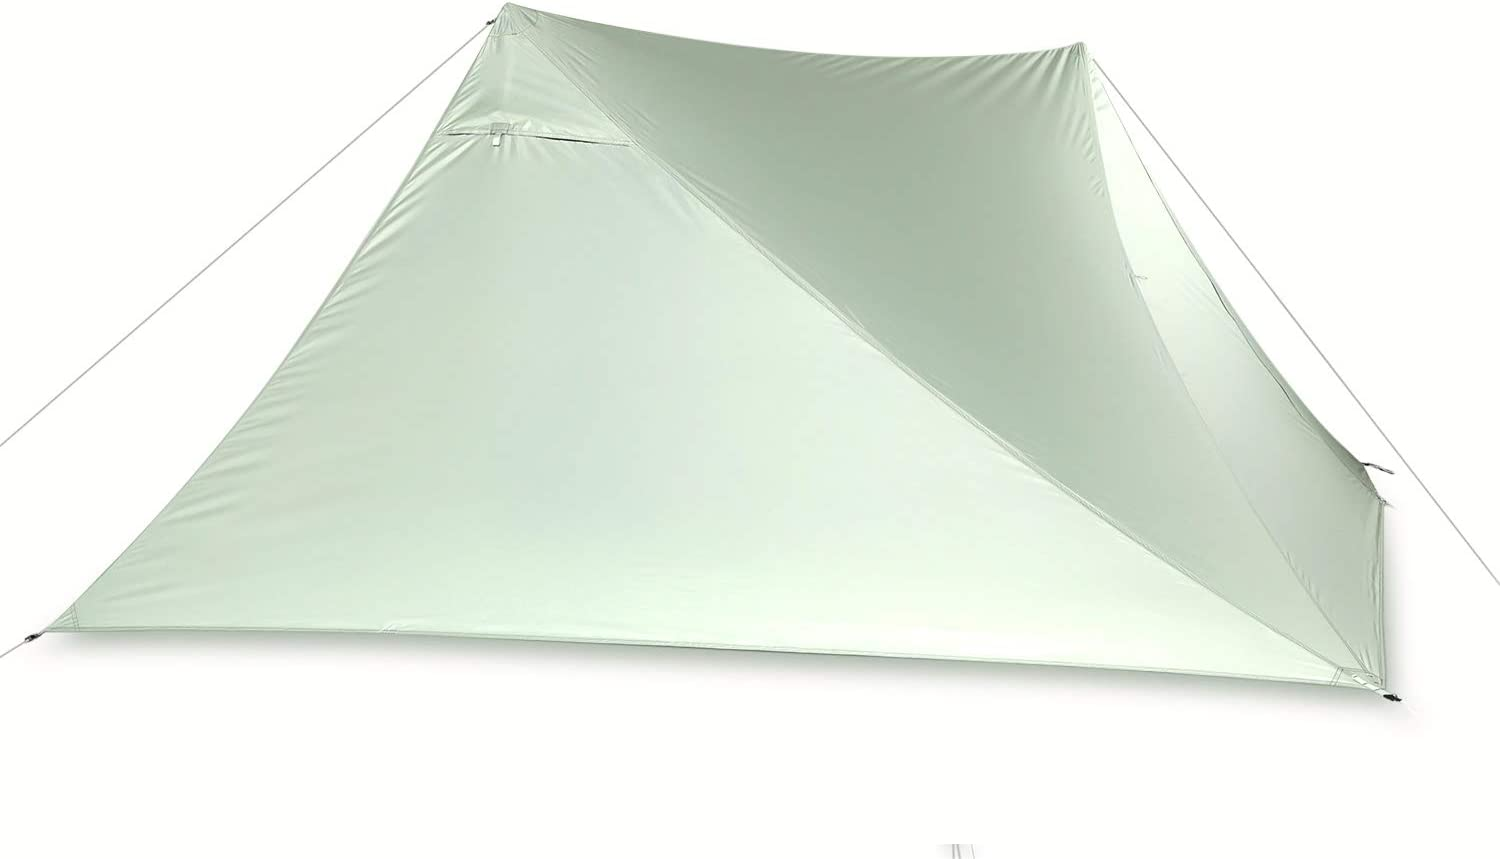 Backpacking and Thru Hiking Shelter Ultralight Simple Pitch Fully Waterproof Double Walled Drop x Dan Durston X-Mid Tent